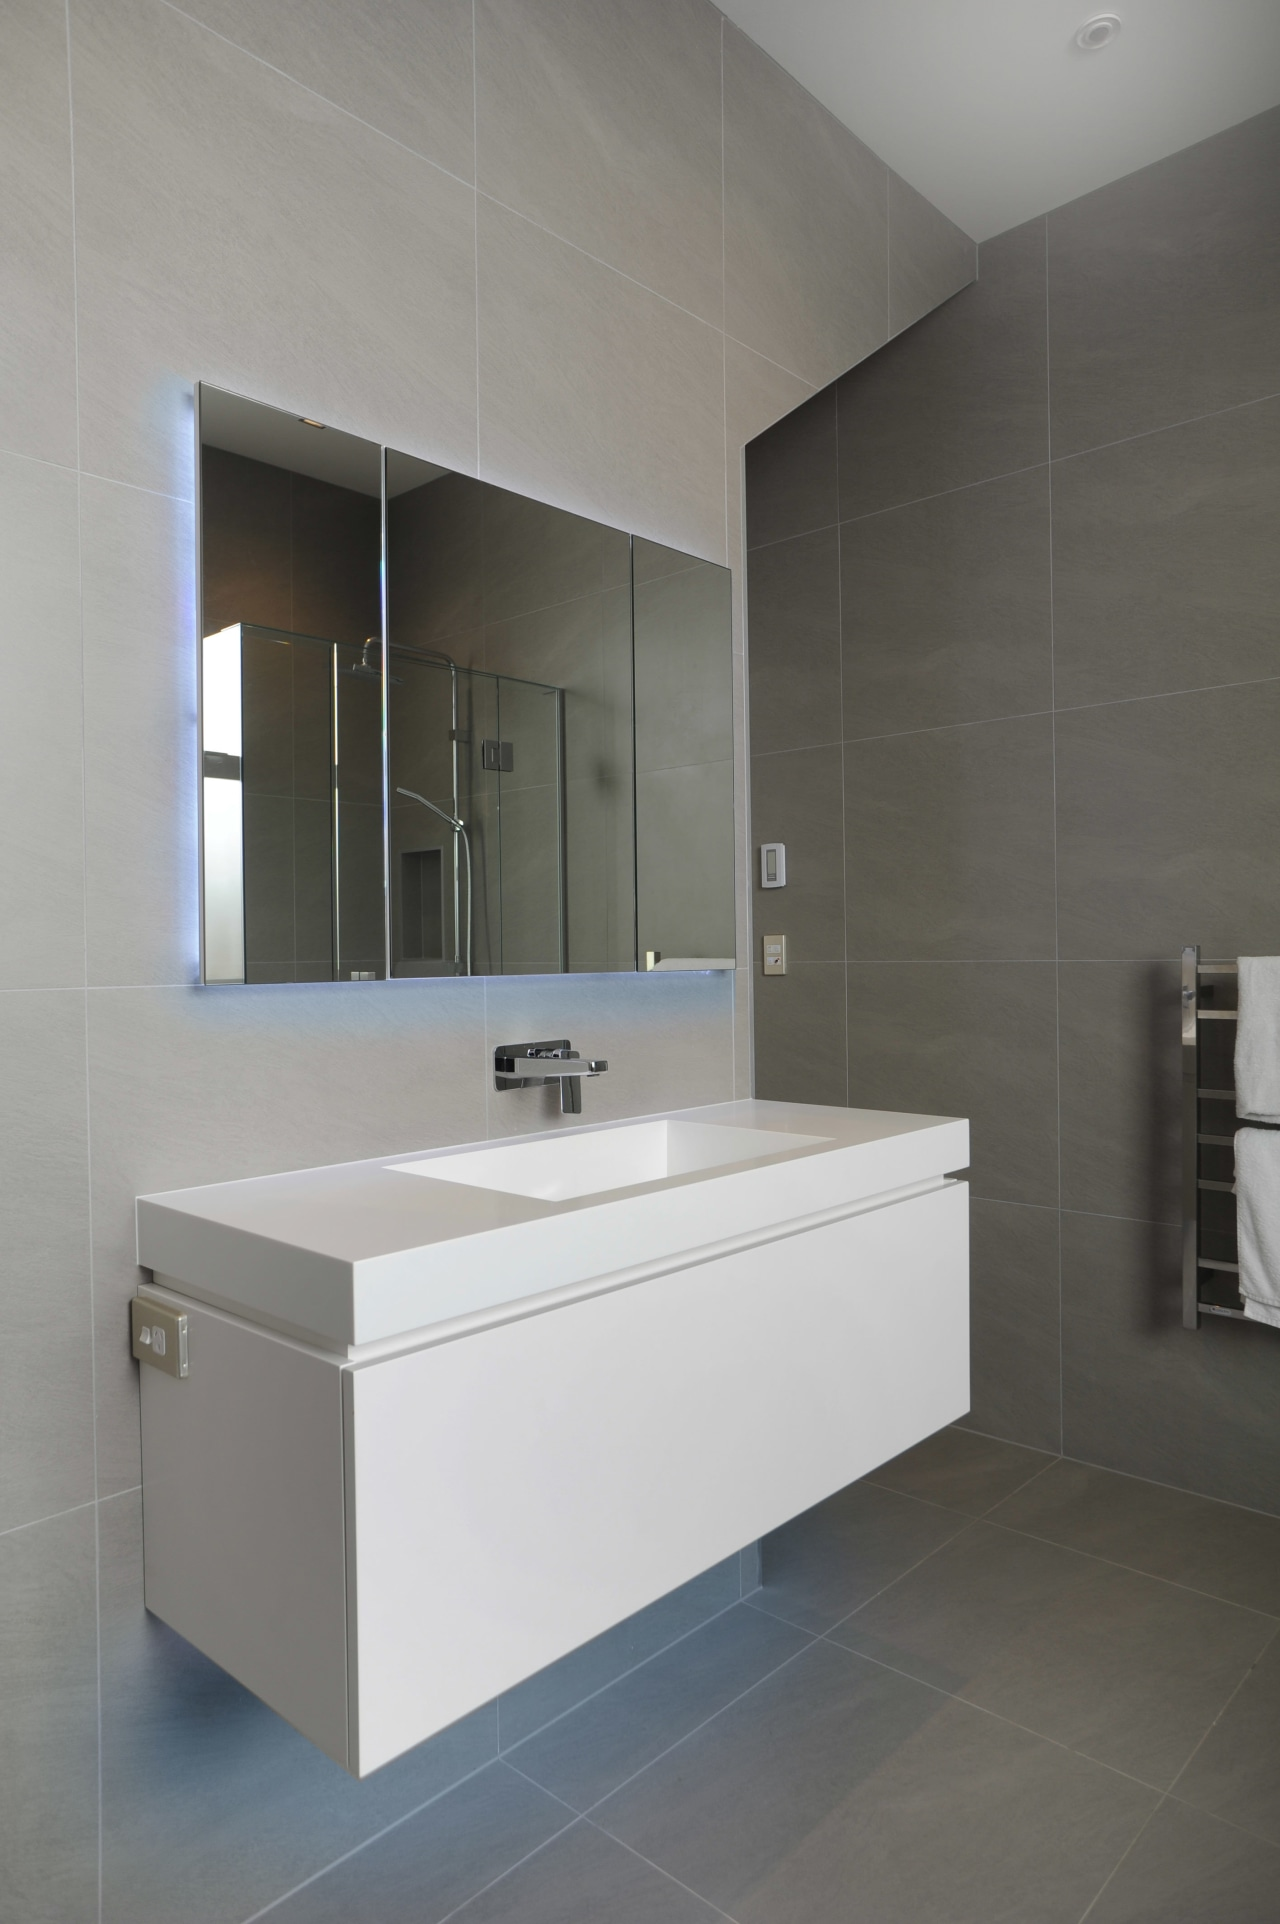 Monochromatic and dramatic, this bathroom is brought together architecture, bathroom, bathroom accessory, bathroom cabinet, floor, interior design, product design, room, sink, tap, tile, wall, gray